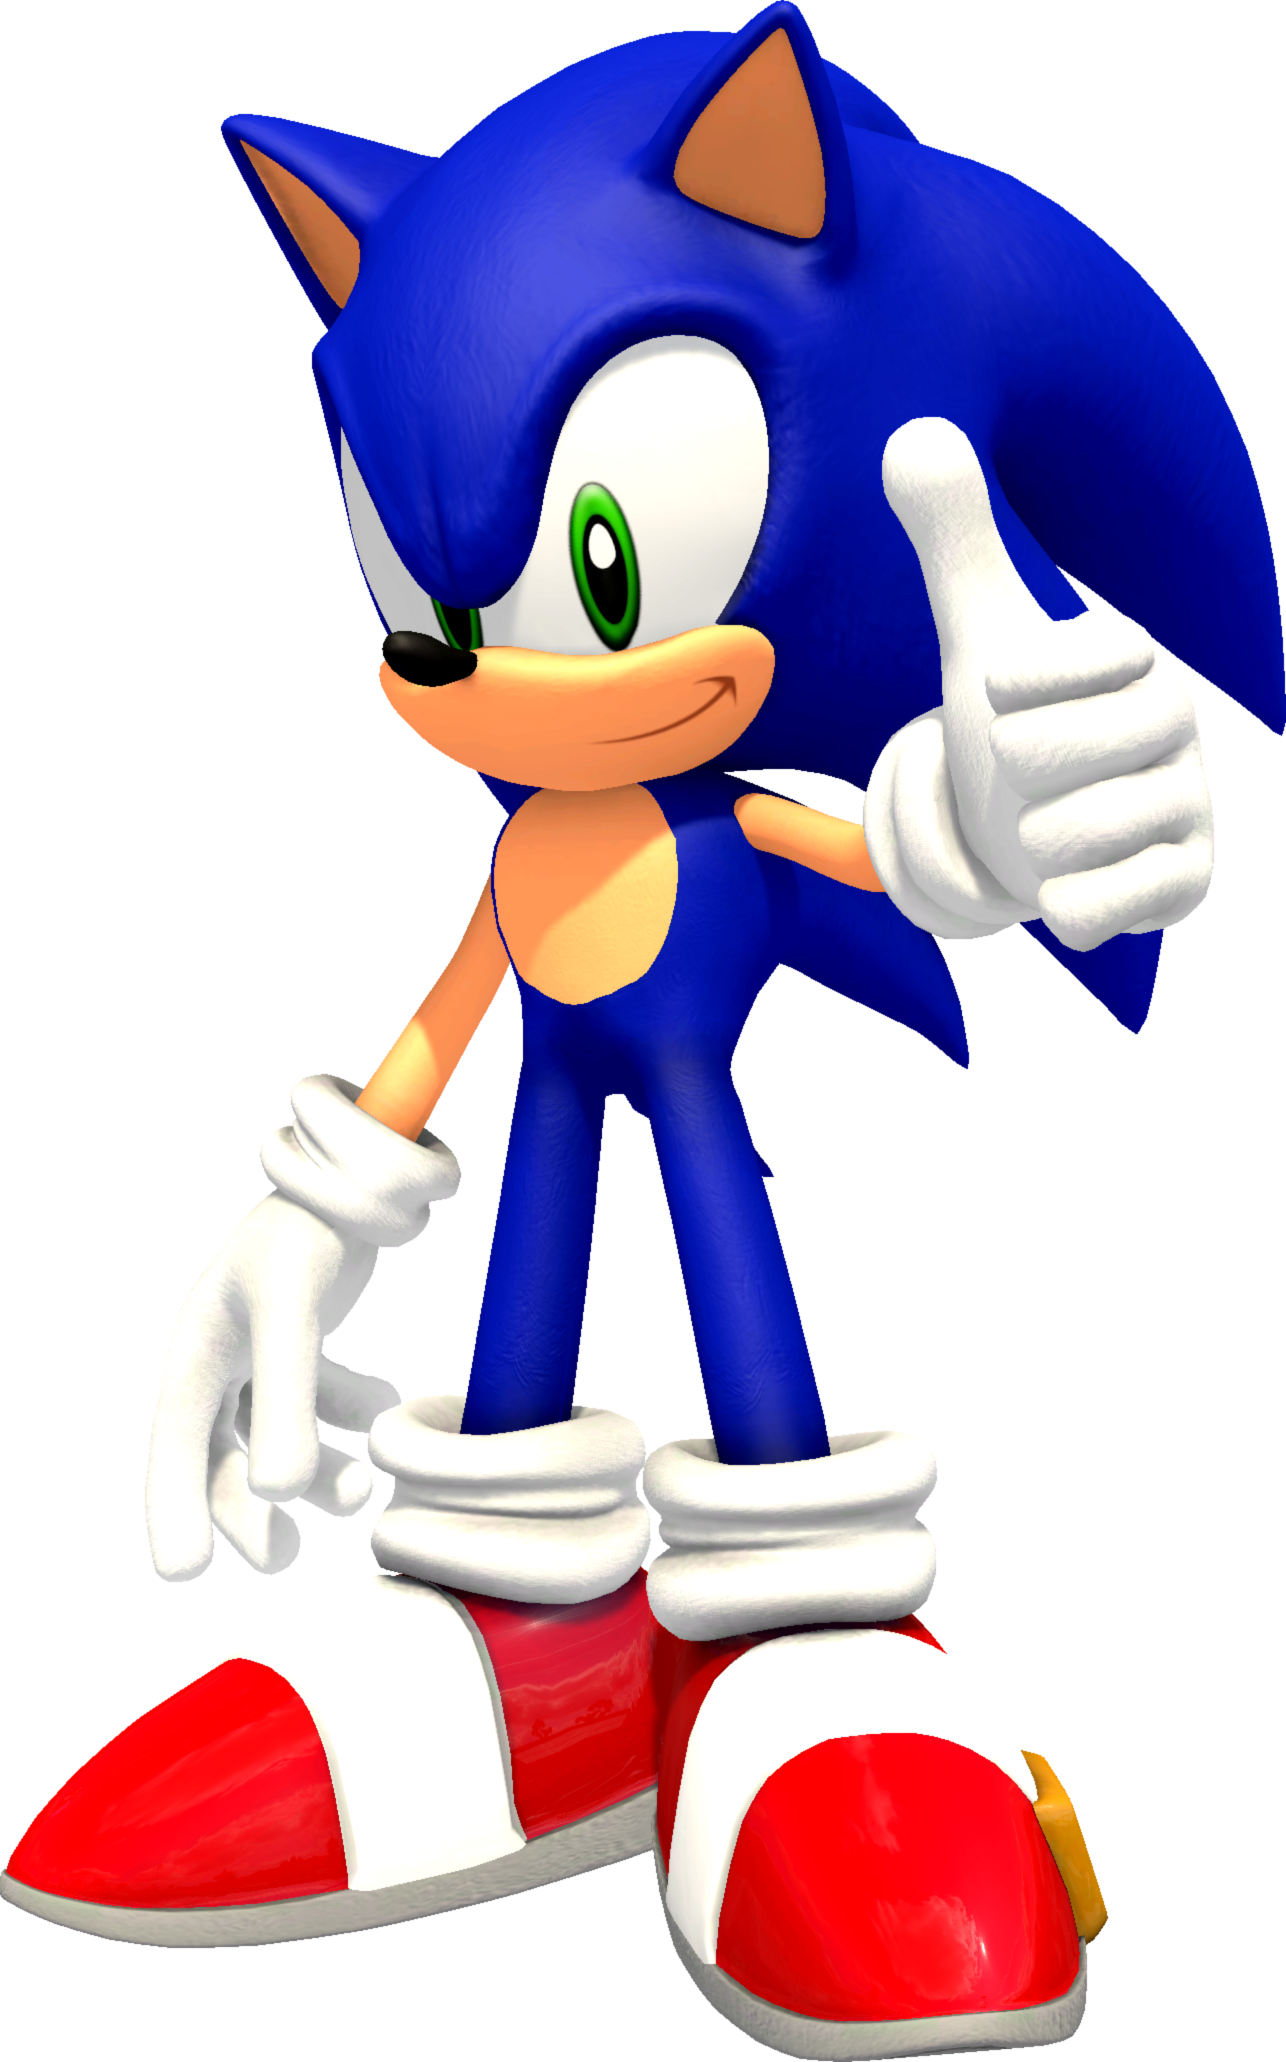 Sonic The Hedgehog 64 Sonic Official Artwork By Ganondork123 On Deviantart